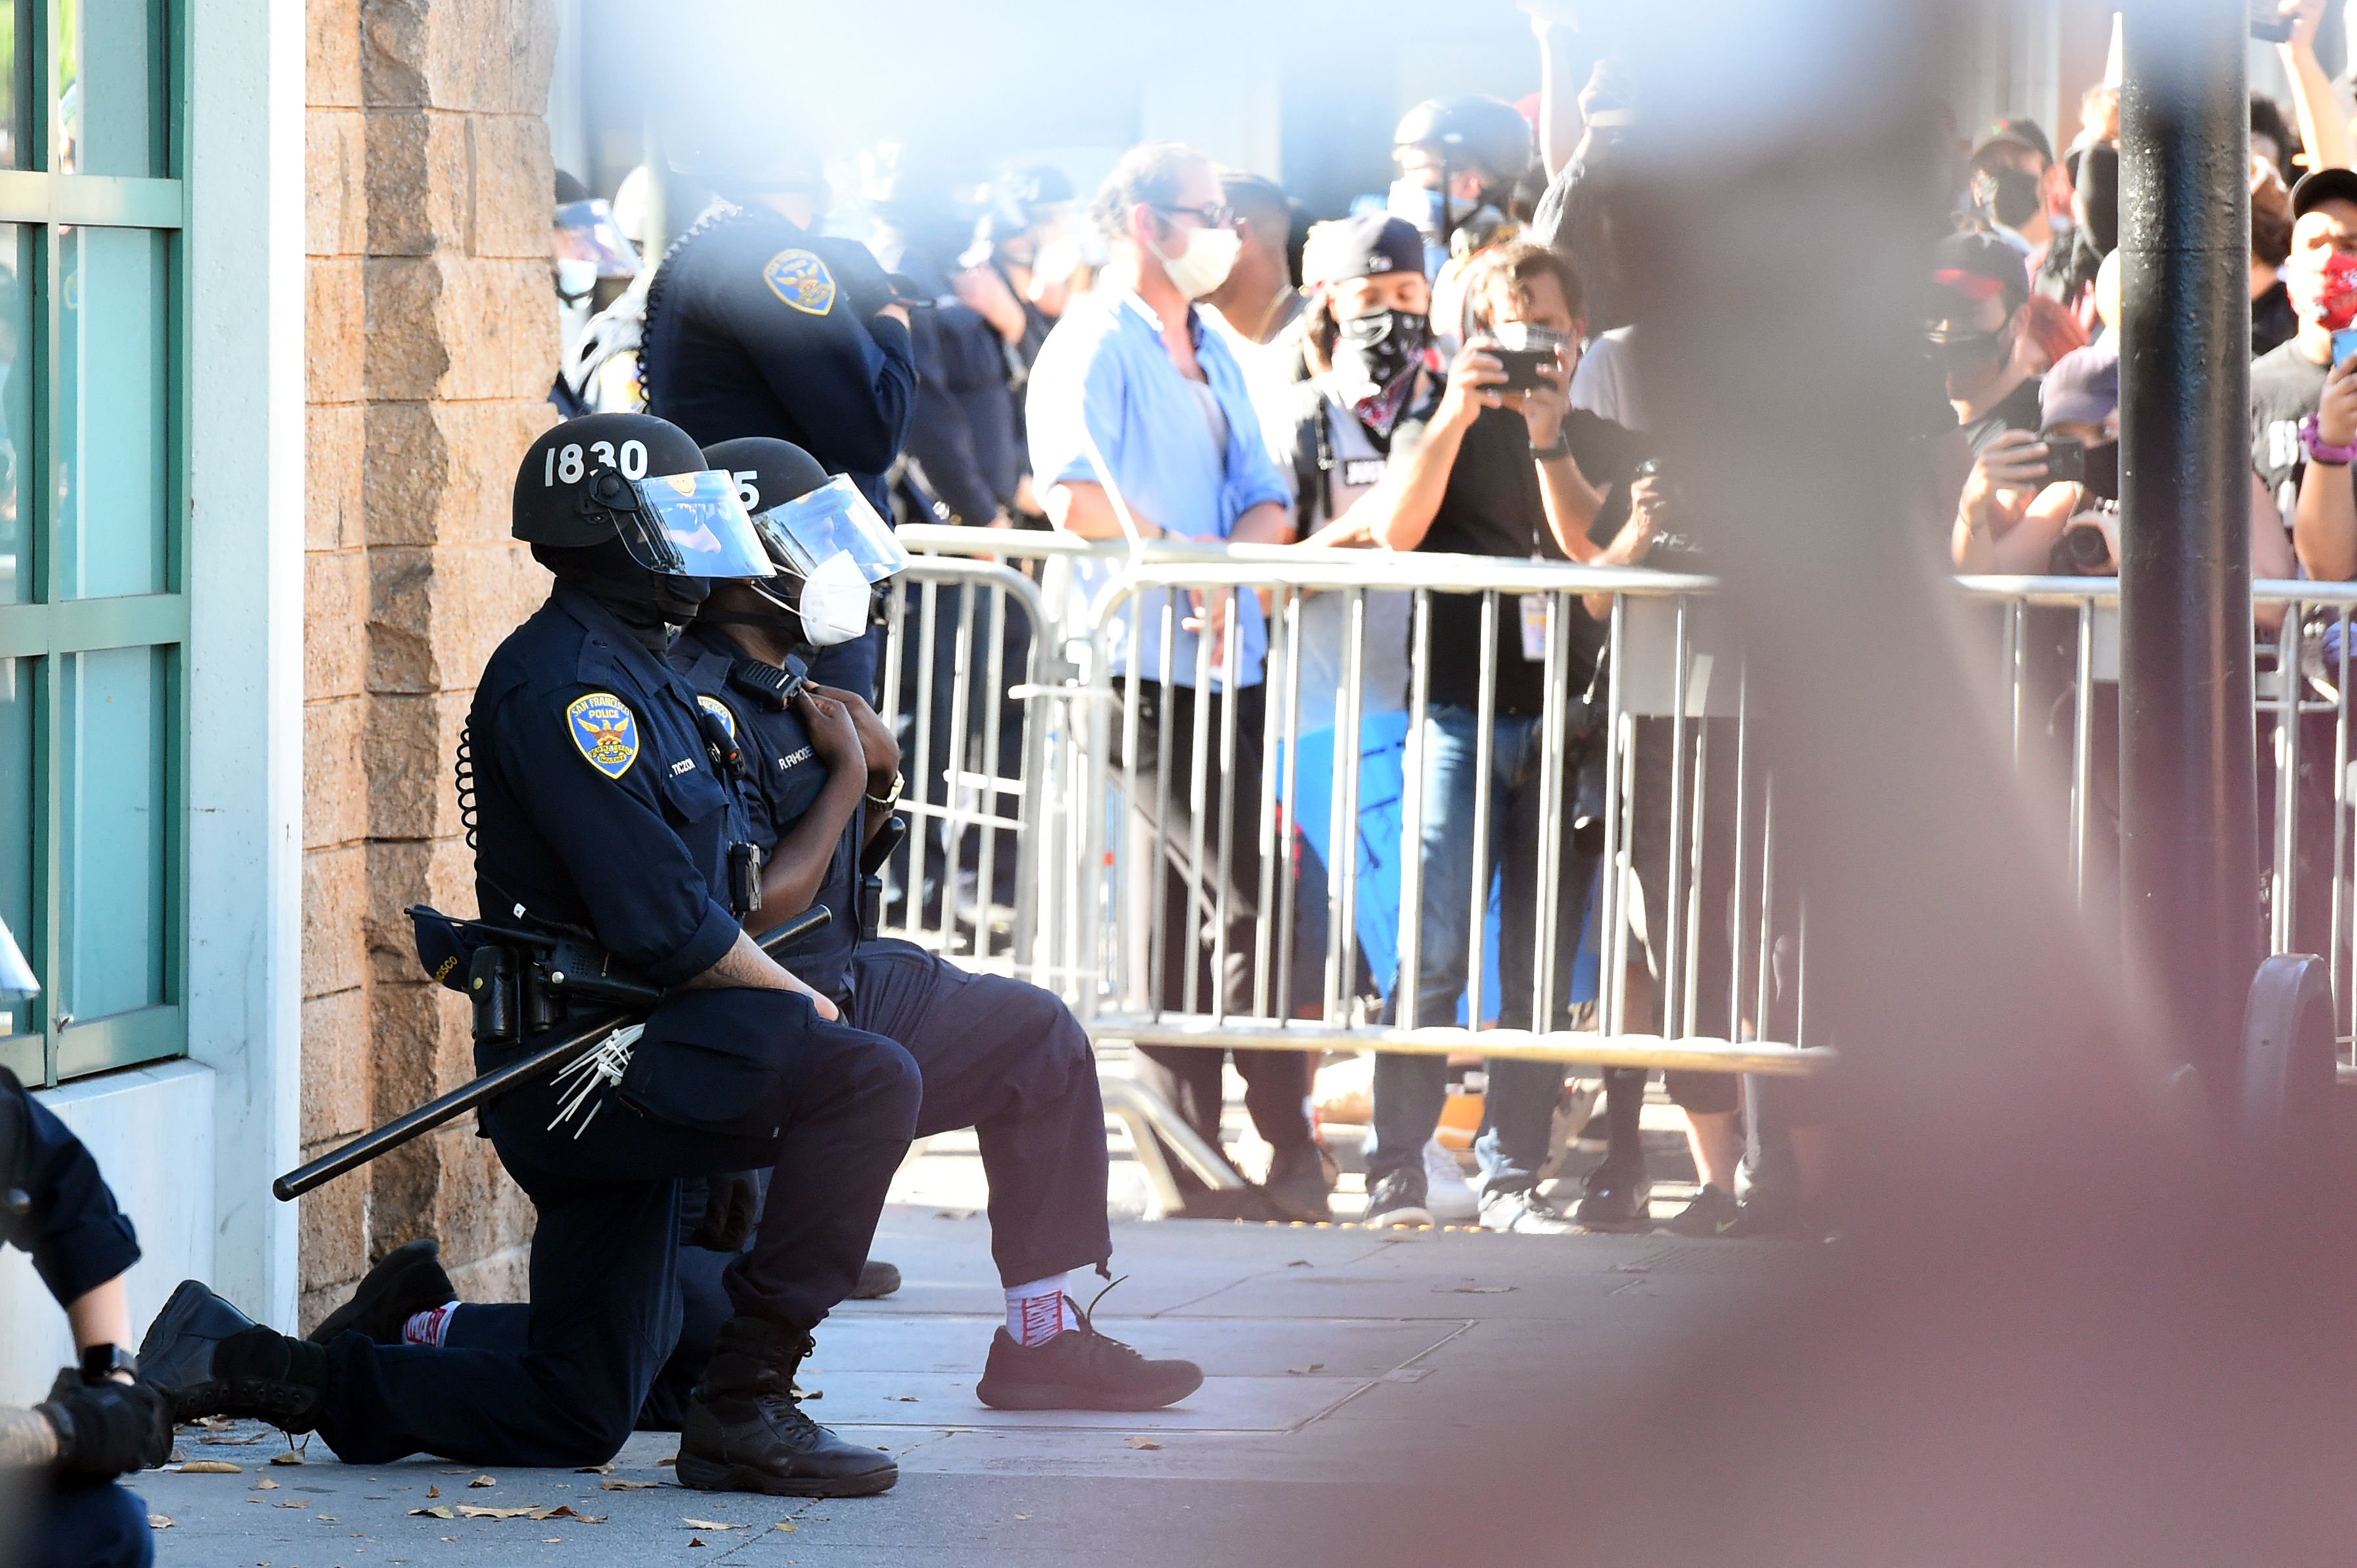 """San Francisco police officers kneel after a crowd of protesters called for them to """"take a knee"""" in front of a police station in San Francisco, California on June 3, 2020. (Photo: Josh Edelson/AFP via Getty Images)"""